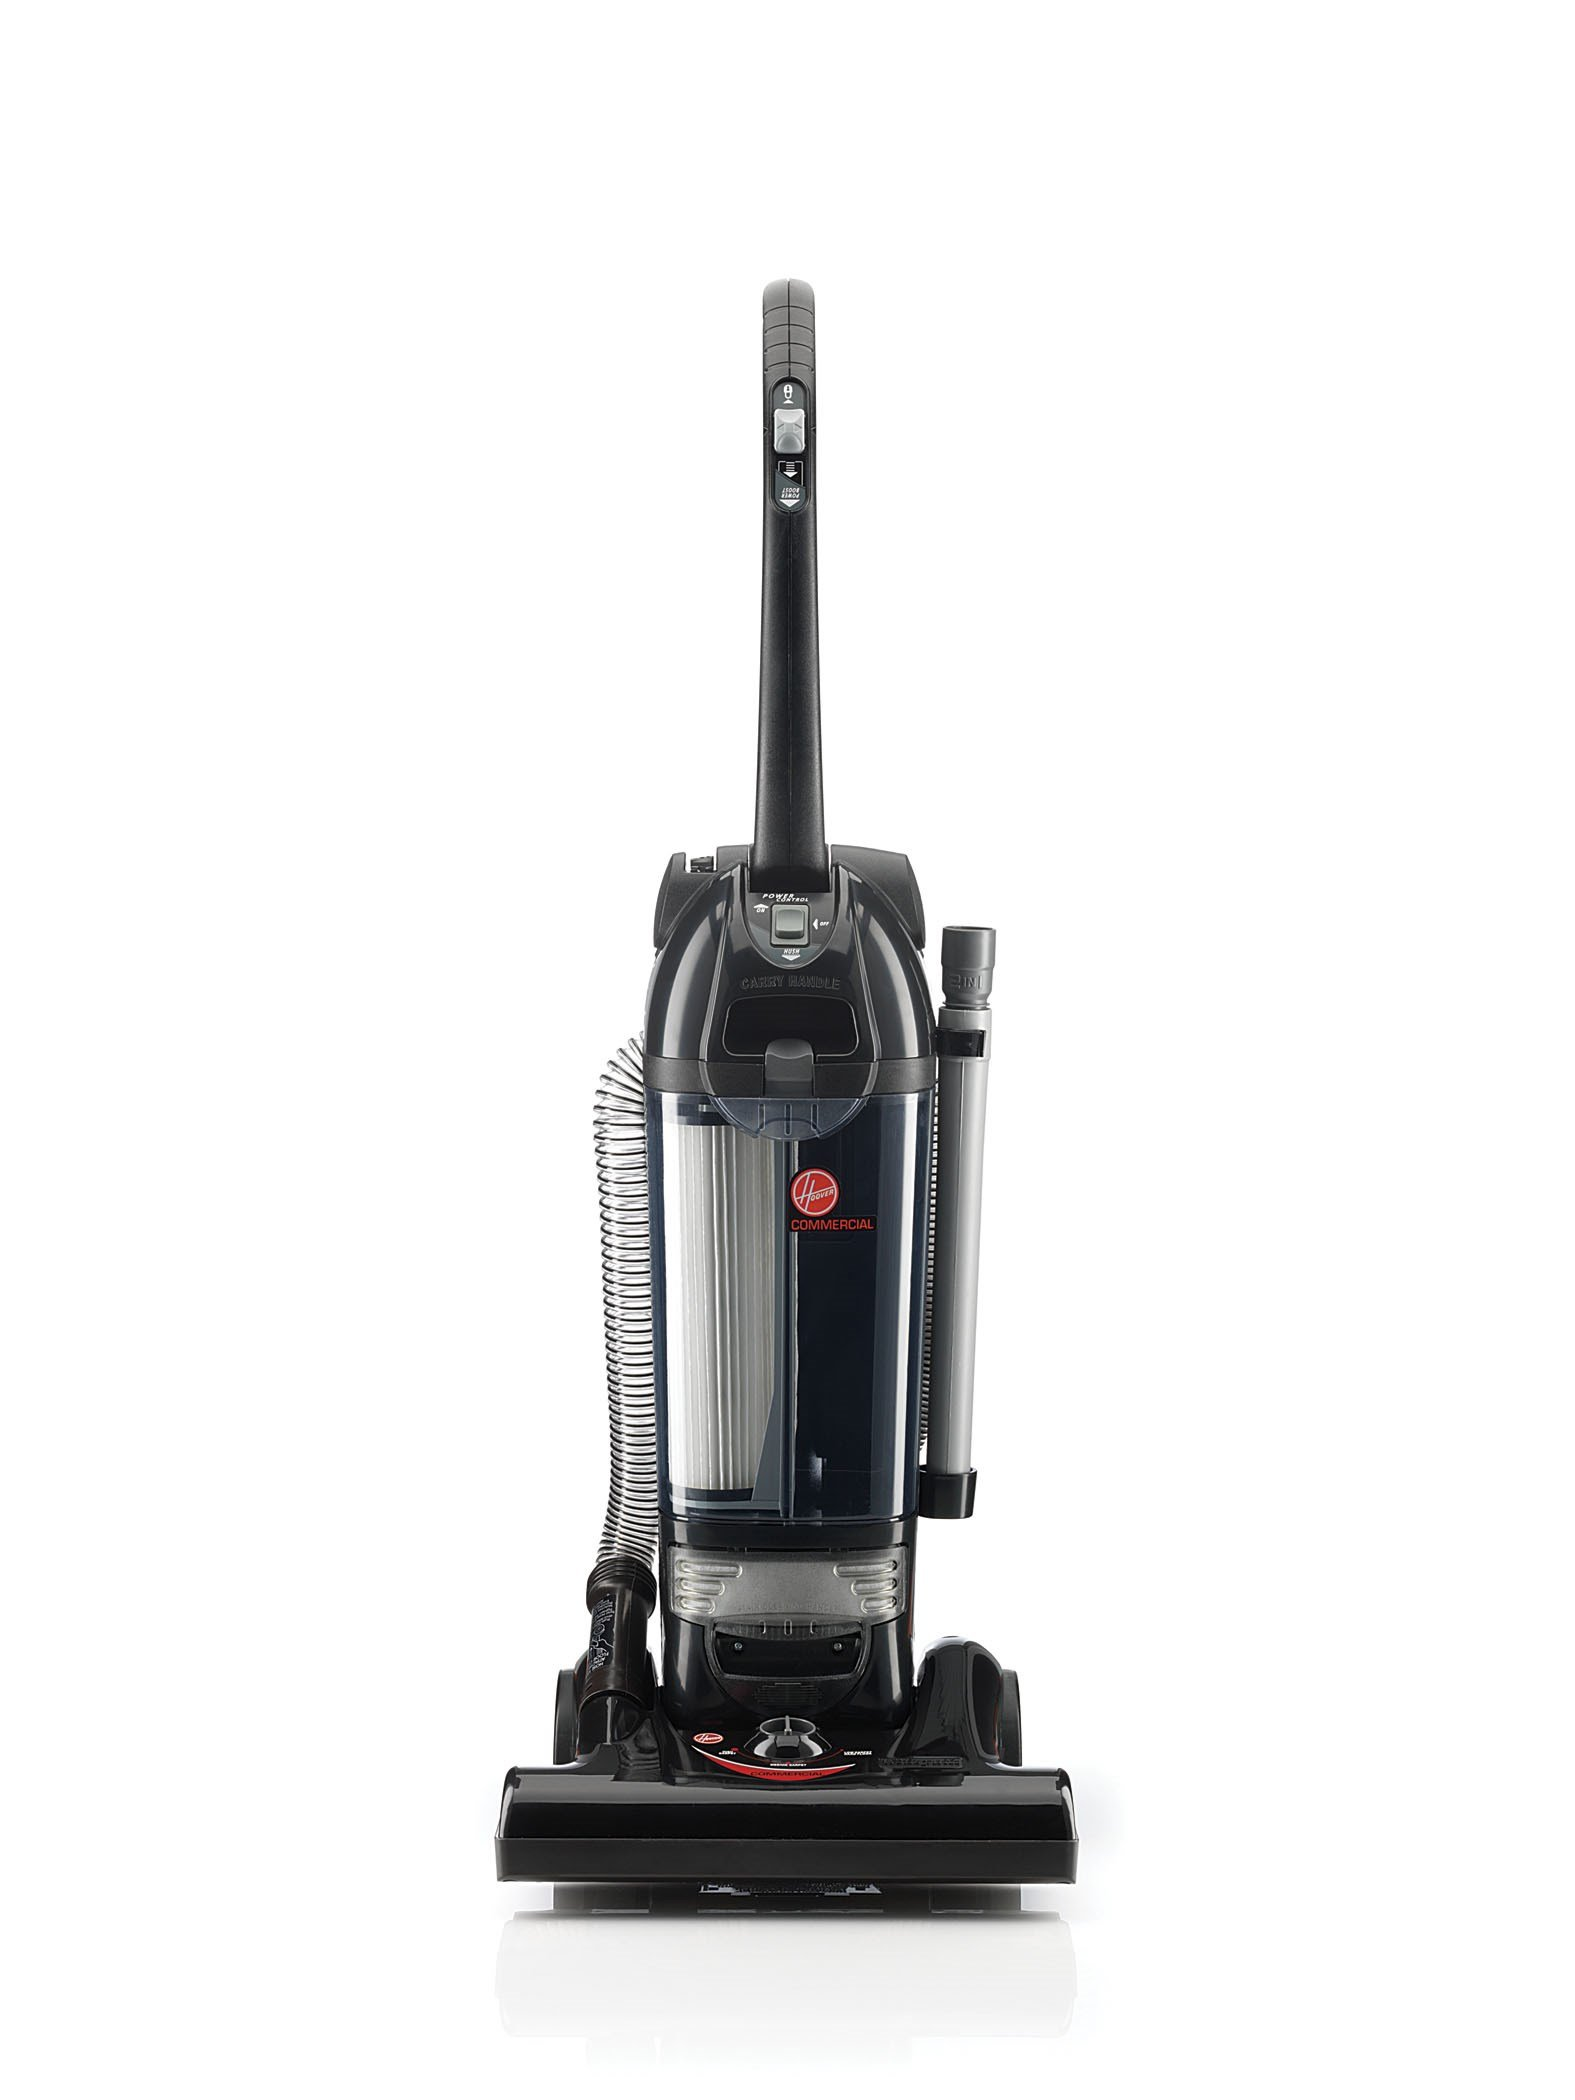 Hoover Commercial C1660-900 Hush Bagless Upright Vacuum Cleaner